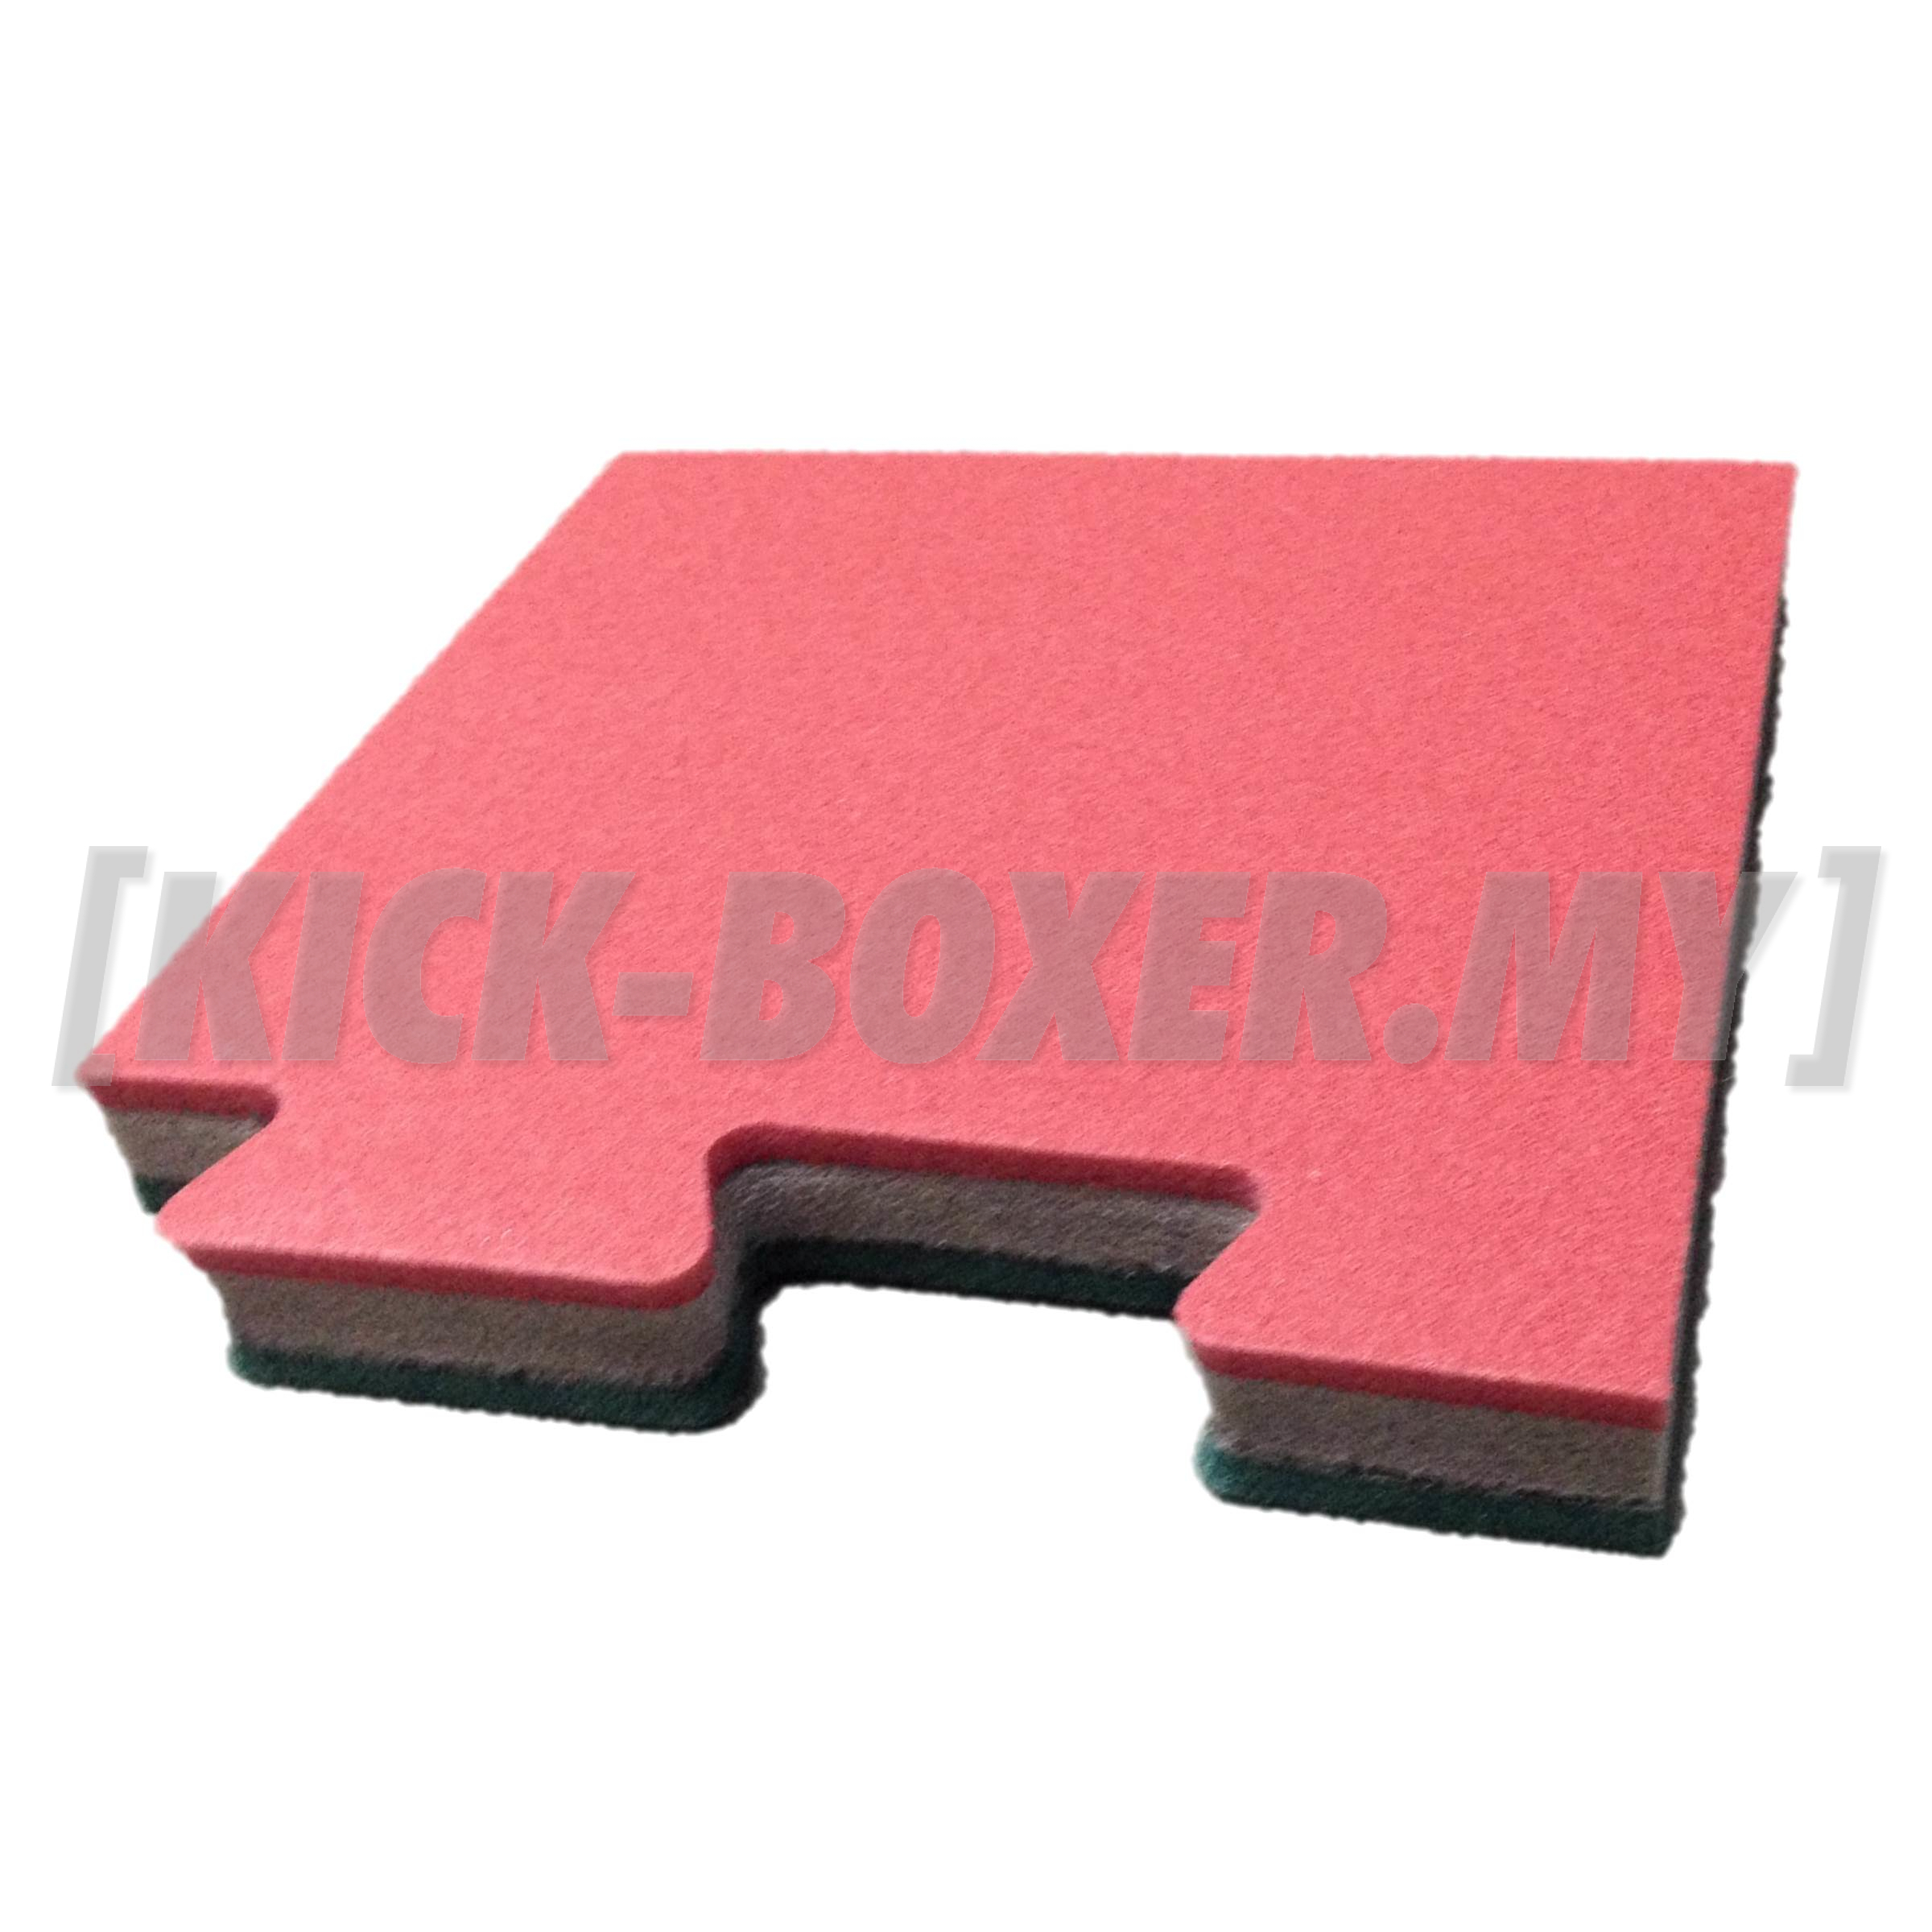 EPE_Puzzle-Floor-Mats_30mm2.jpg